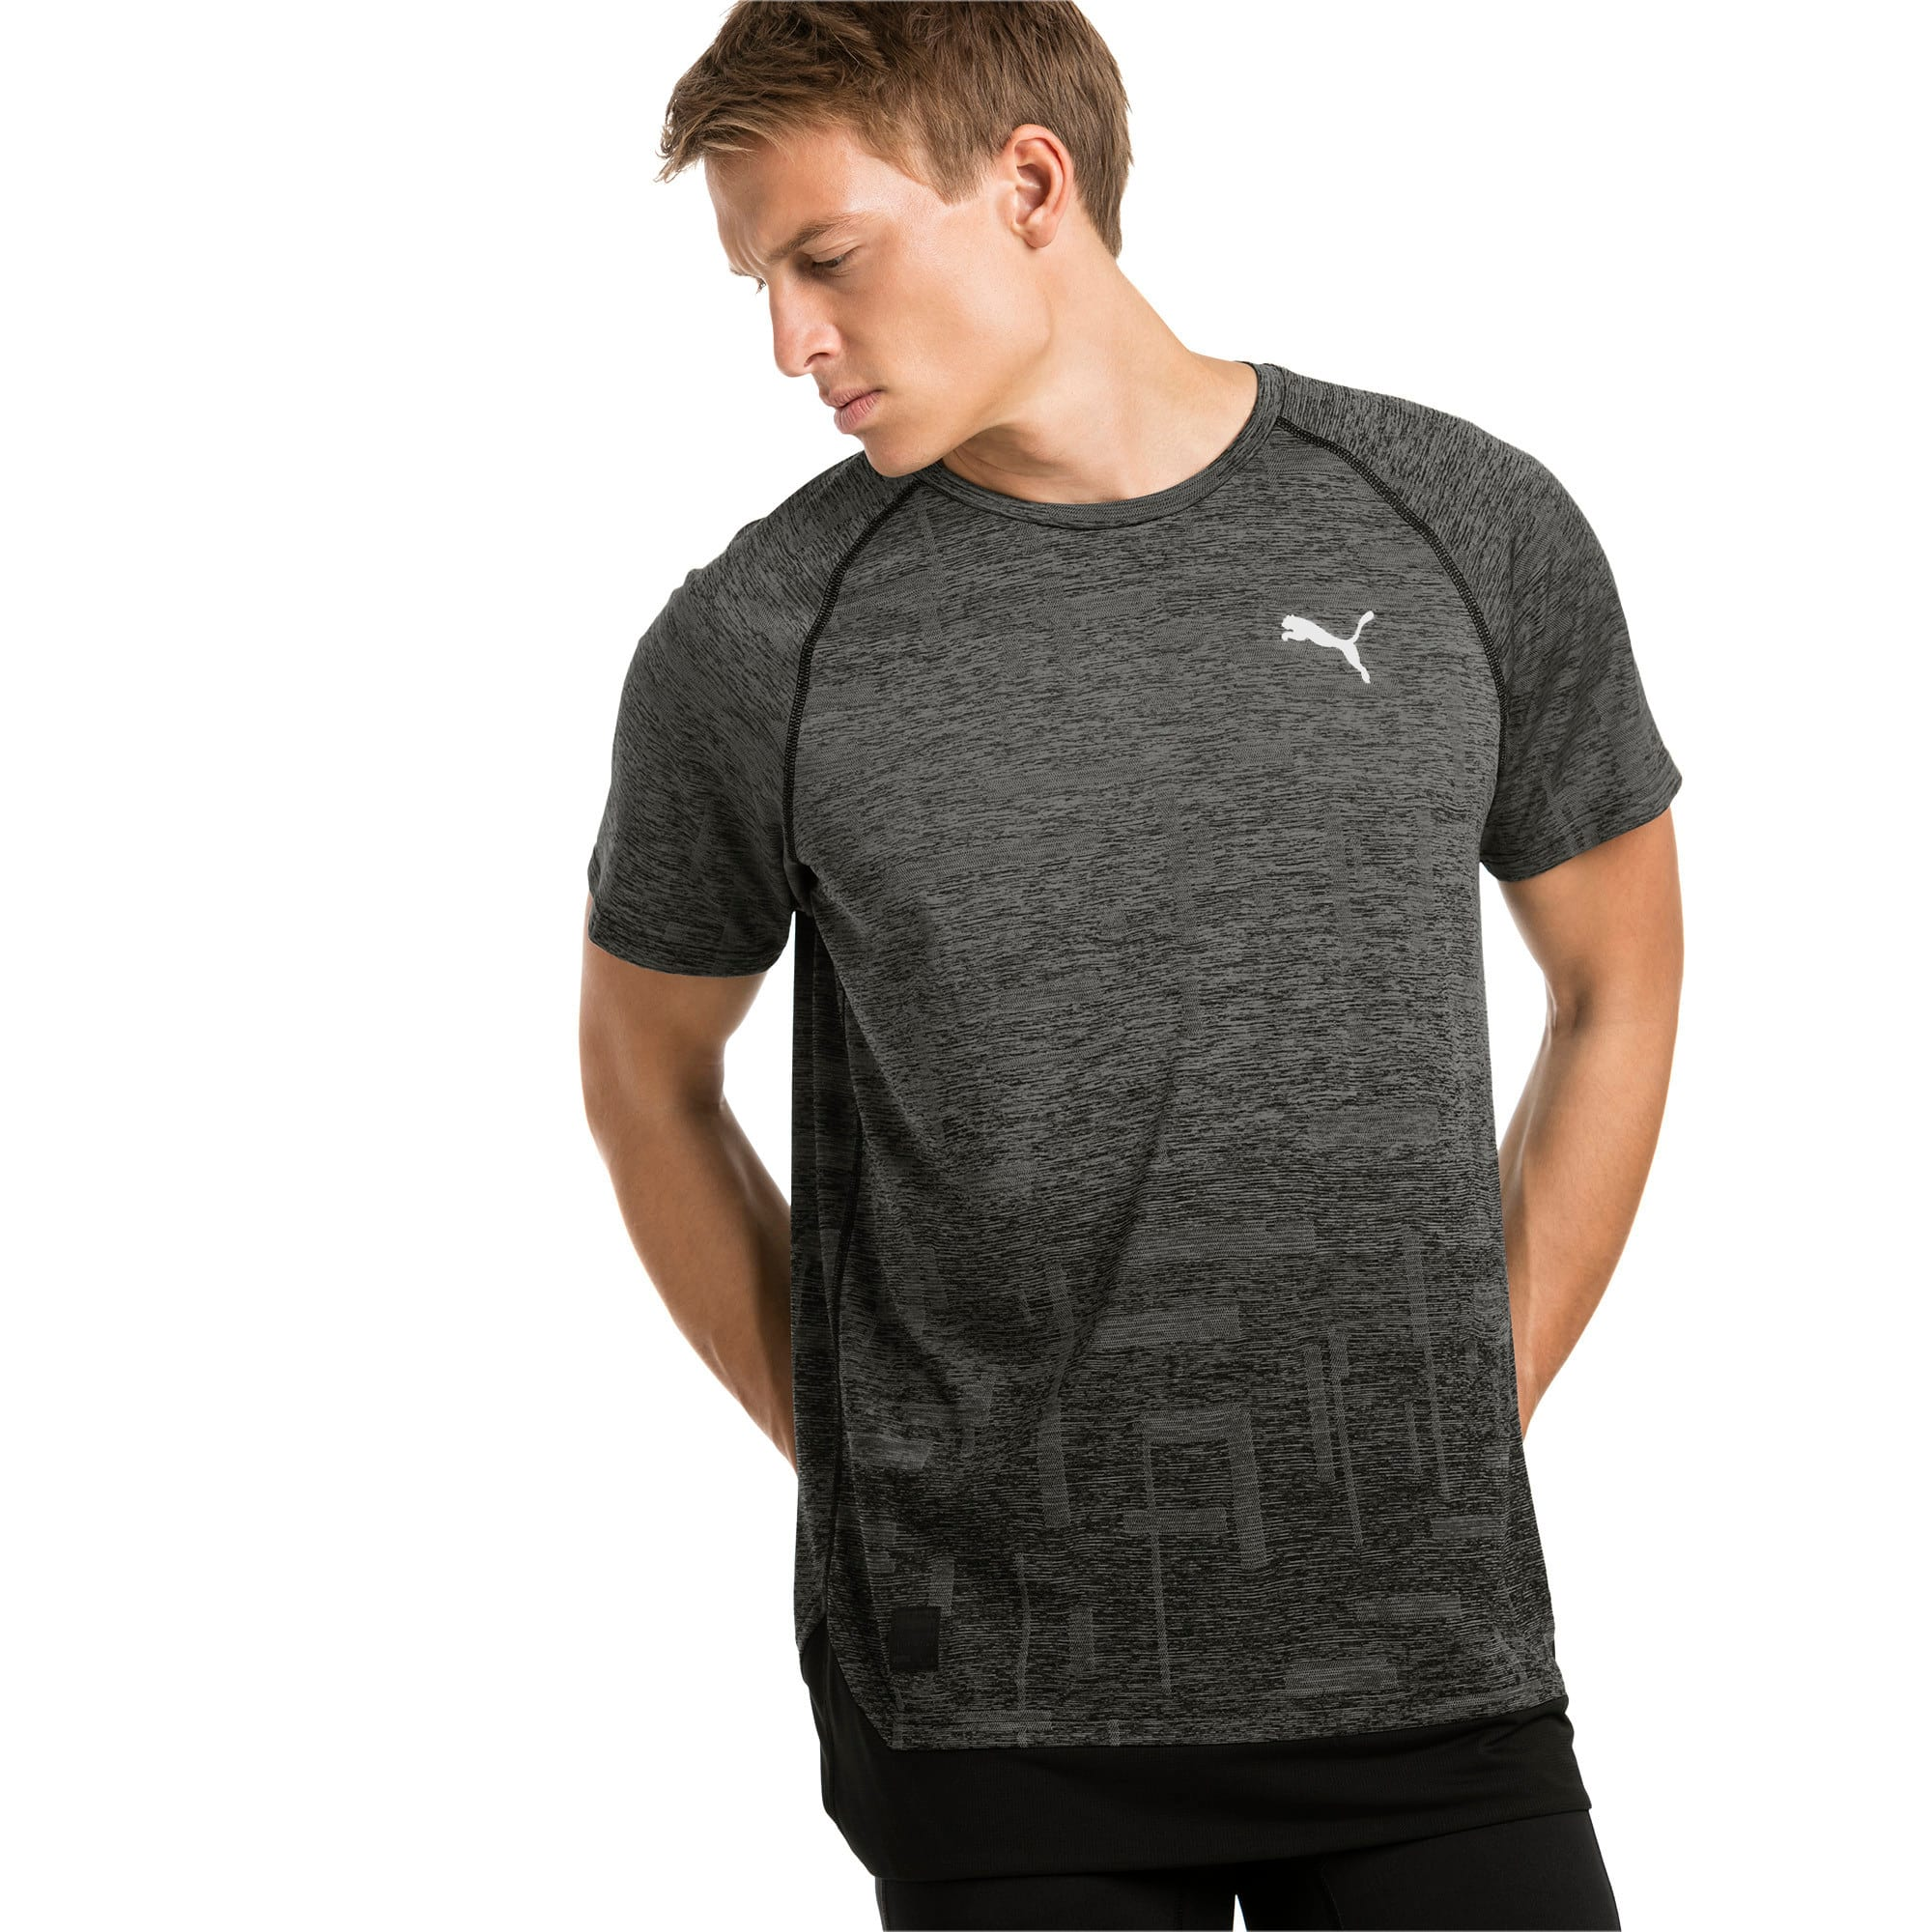 Thumbnail 1 of T-Shirt Energy Tech Training pour homme, Puma Black, medium